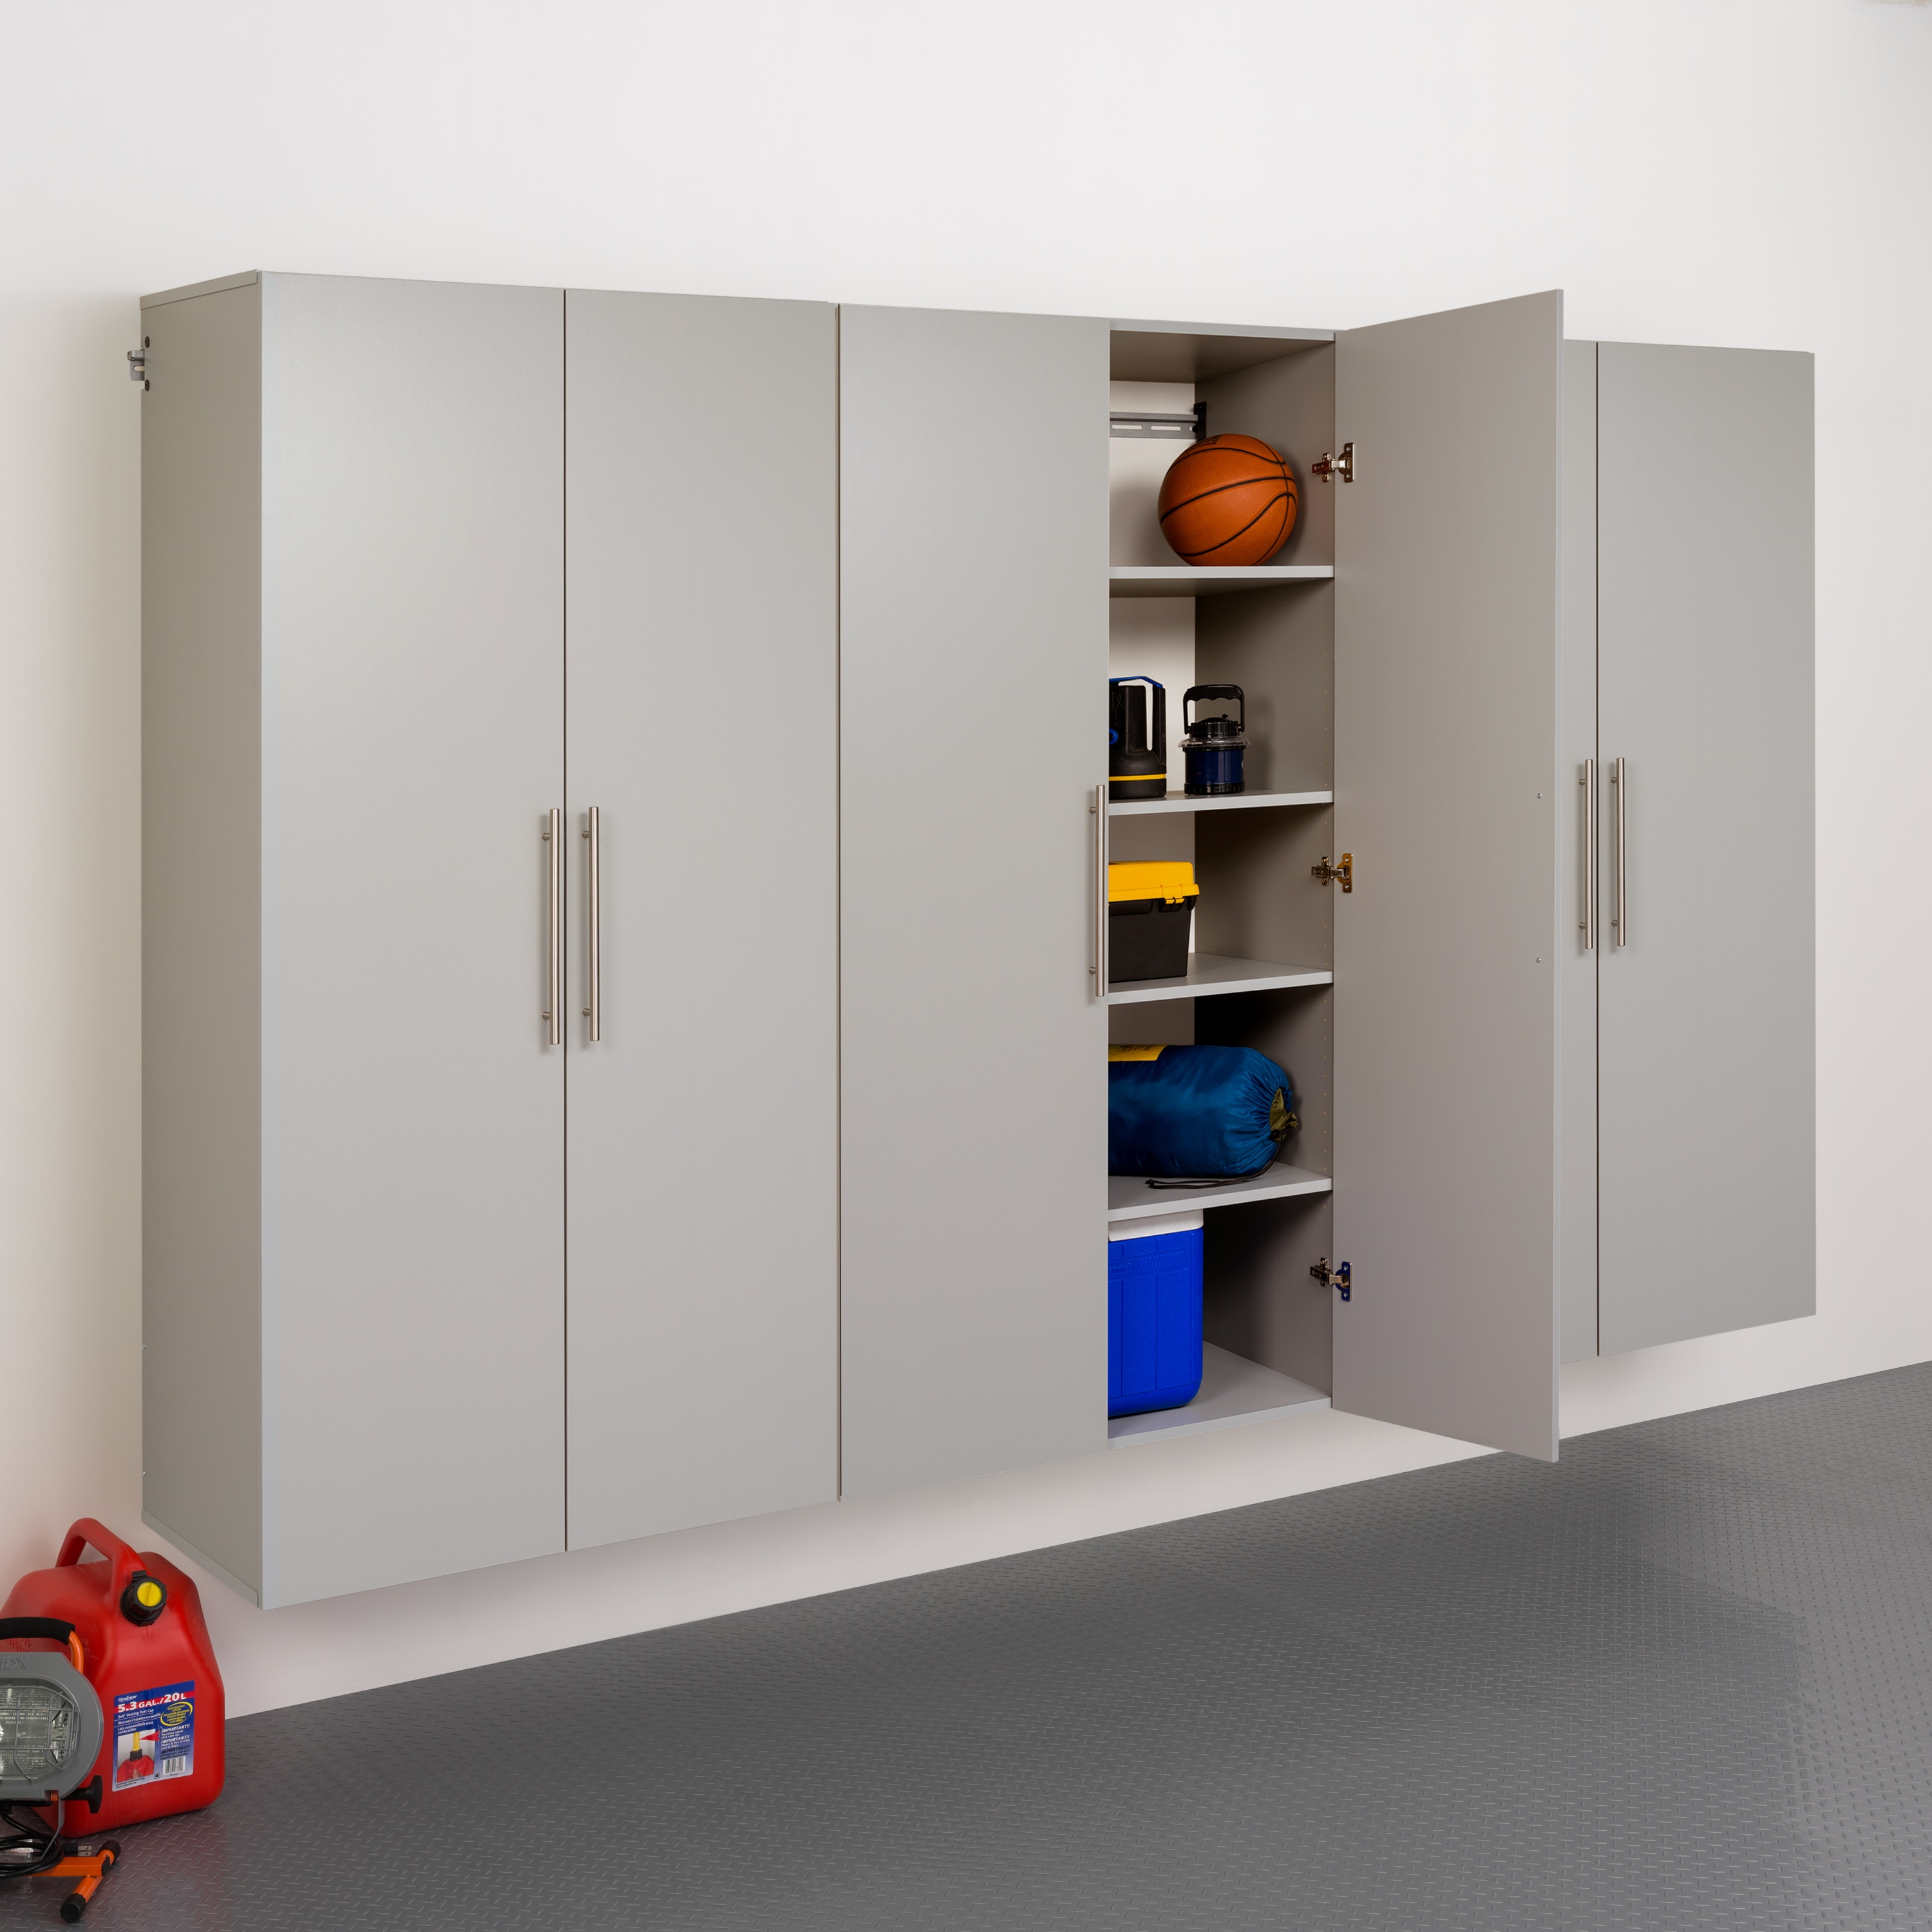 Garage Cabinets Overstock Buy Garage Storage Online At Overstock Our Best Storage